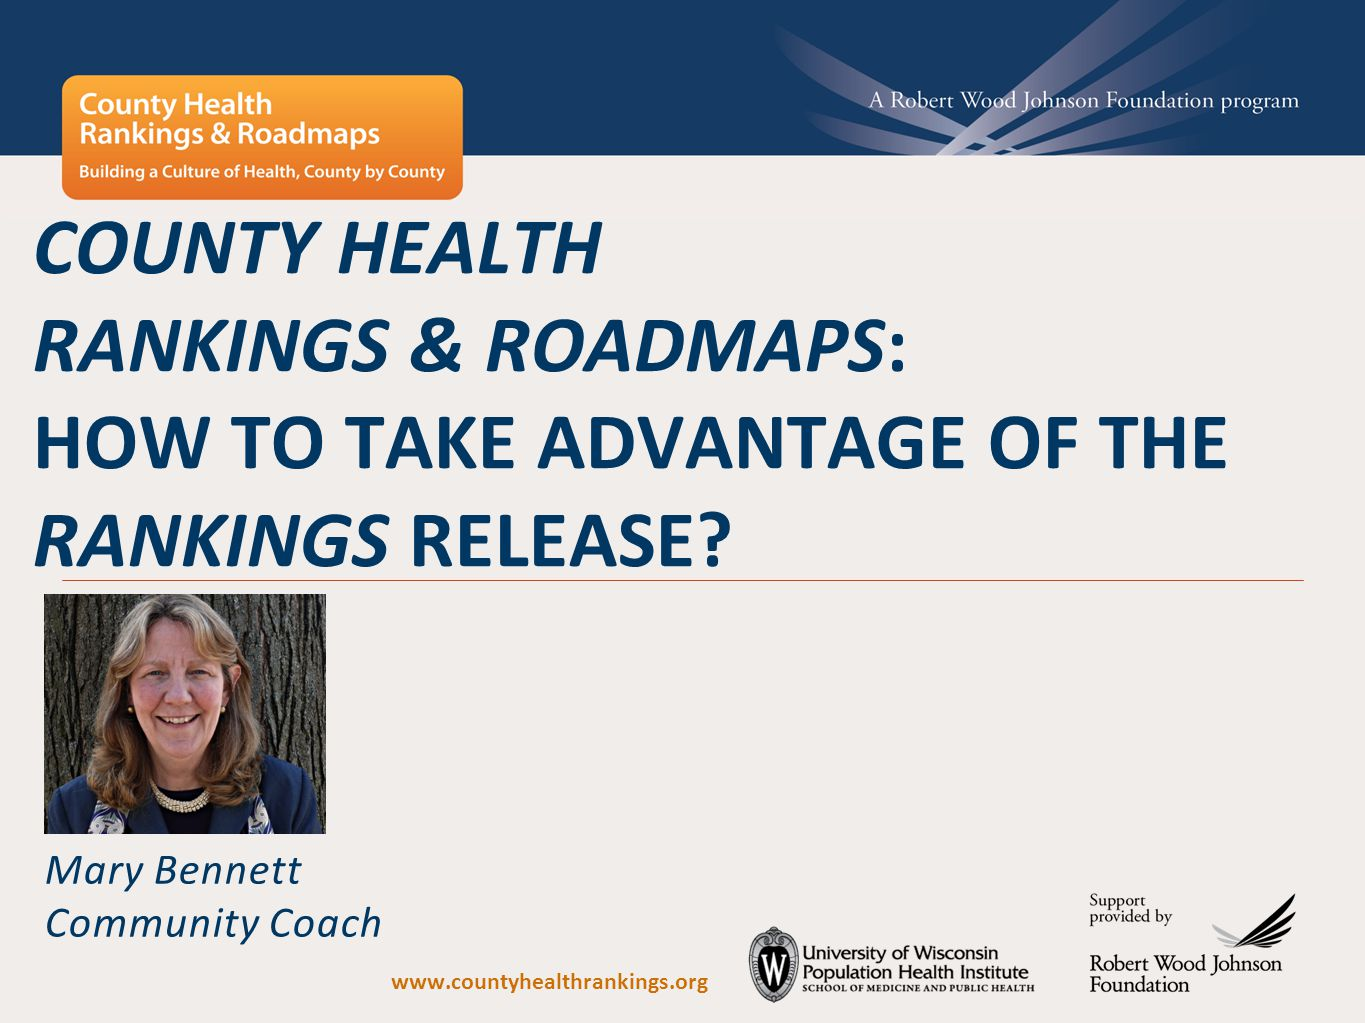 County Health Rankings & Roadmaps is a collaboration between the Robert Wood Johnson Foundation and the University of Wisconsin Population Health Institute.